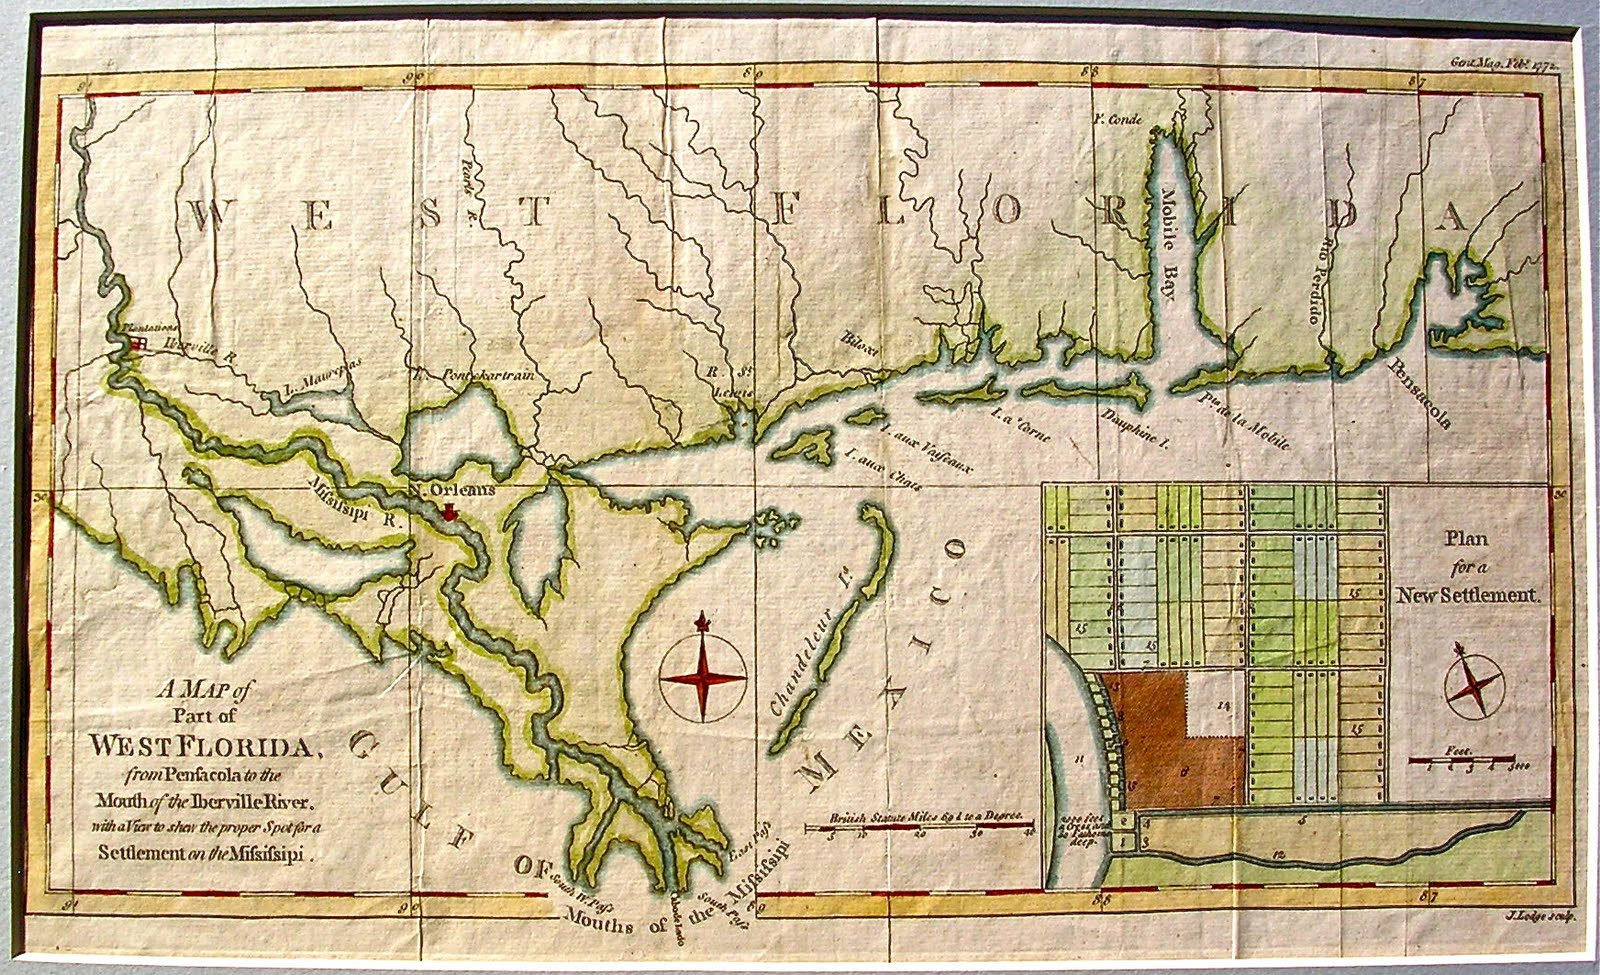 West Florida Map.Lighthouse Books Abaa 1772 Hand Colored Map Of West Florida